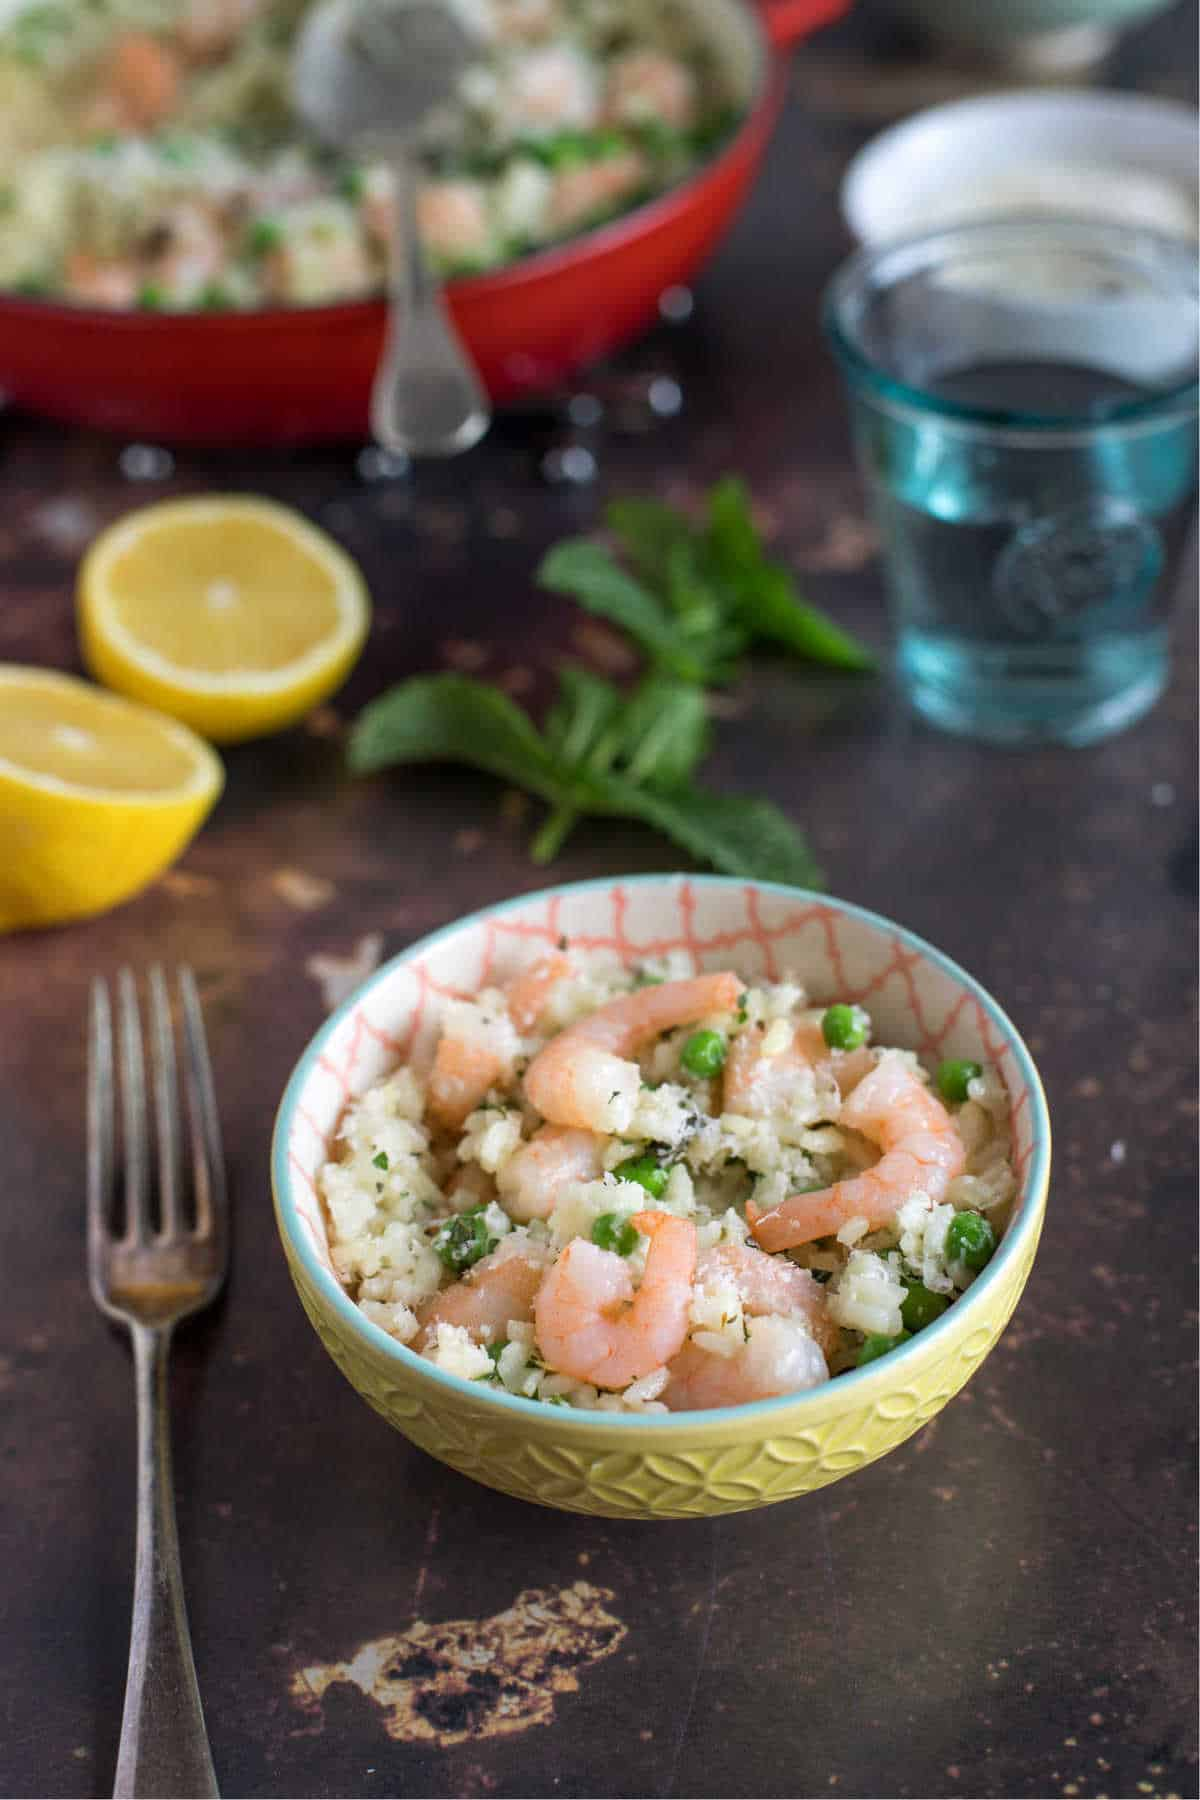 A bowl of prawn and pea risotto with lemon.